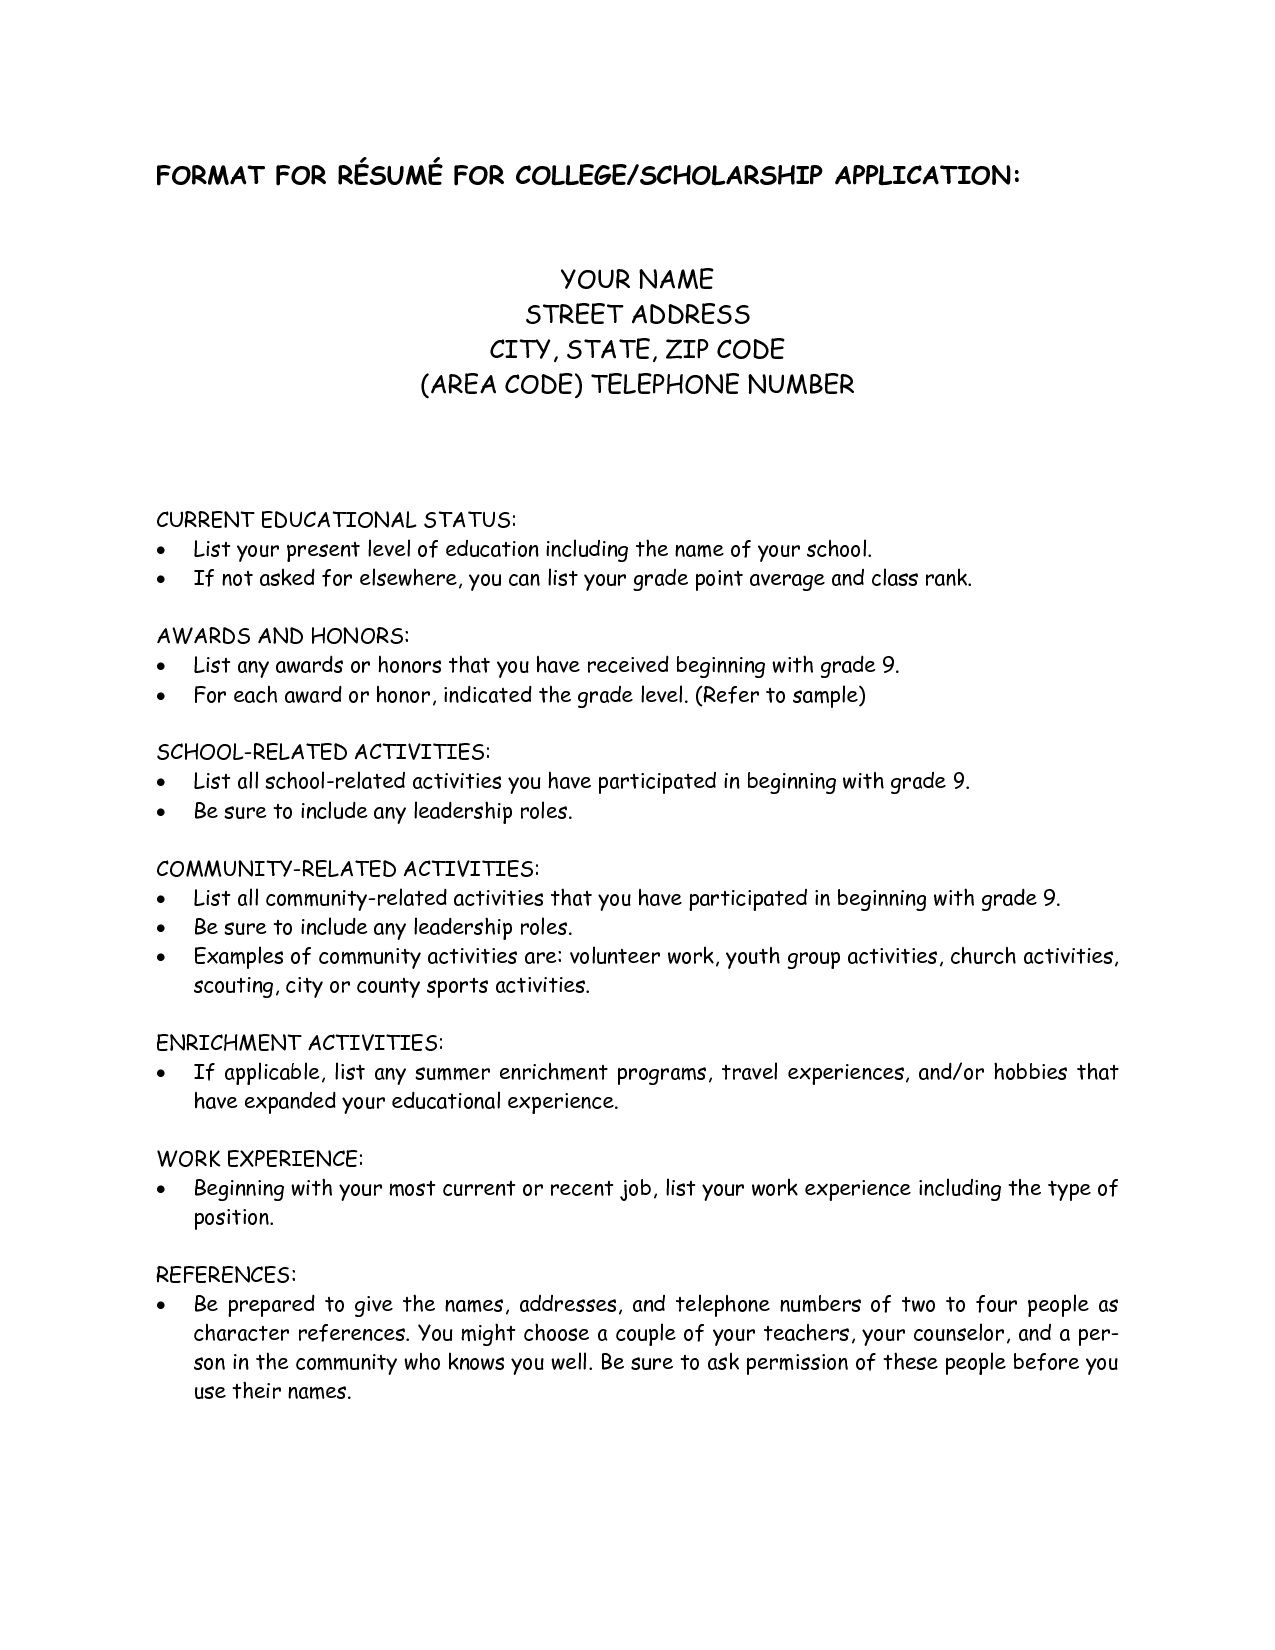 College scholarship resume template 1197 http for Sample resume for high school students applying for scholarships